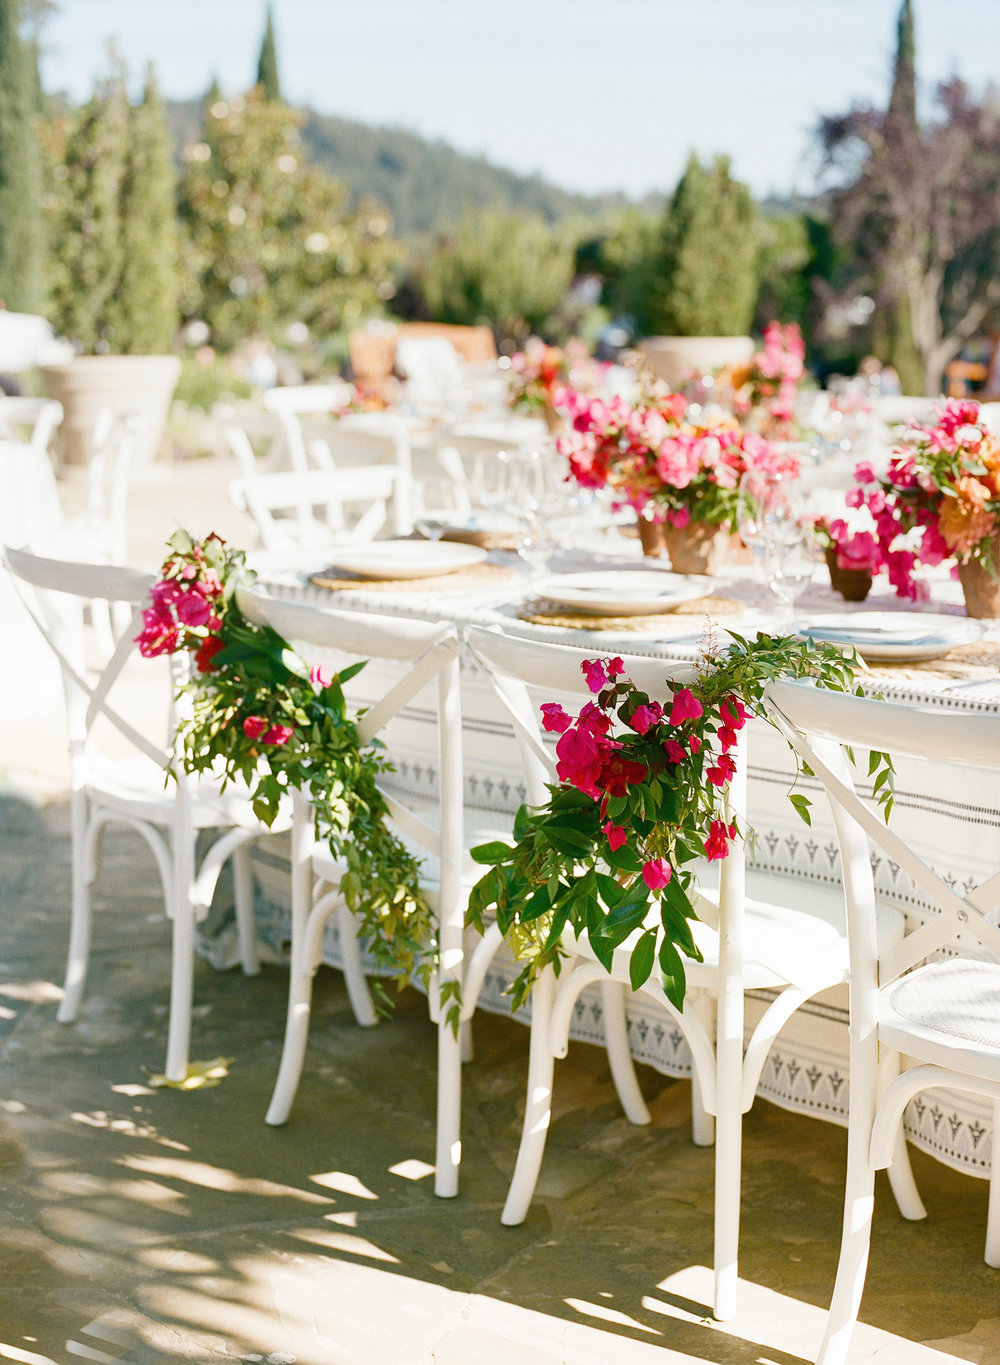 28-bougainvillea-backs-chairs.jpg